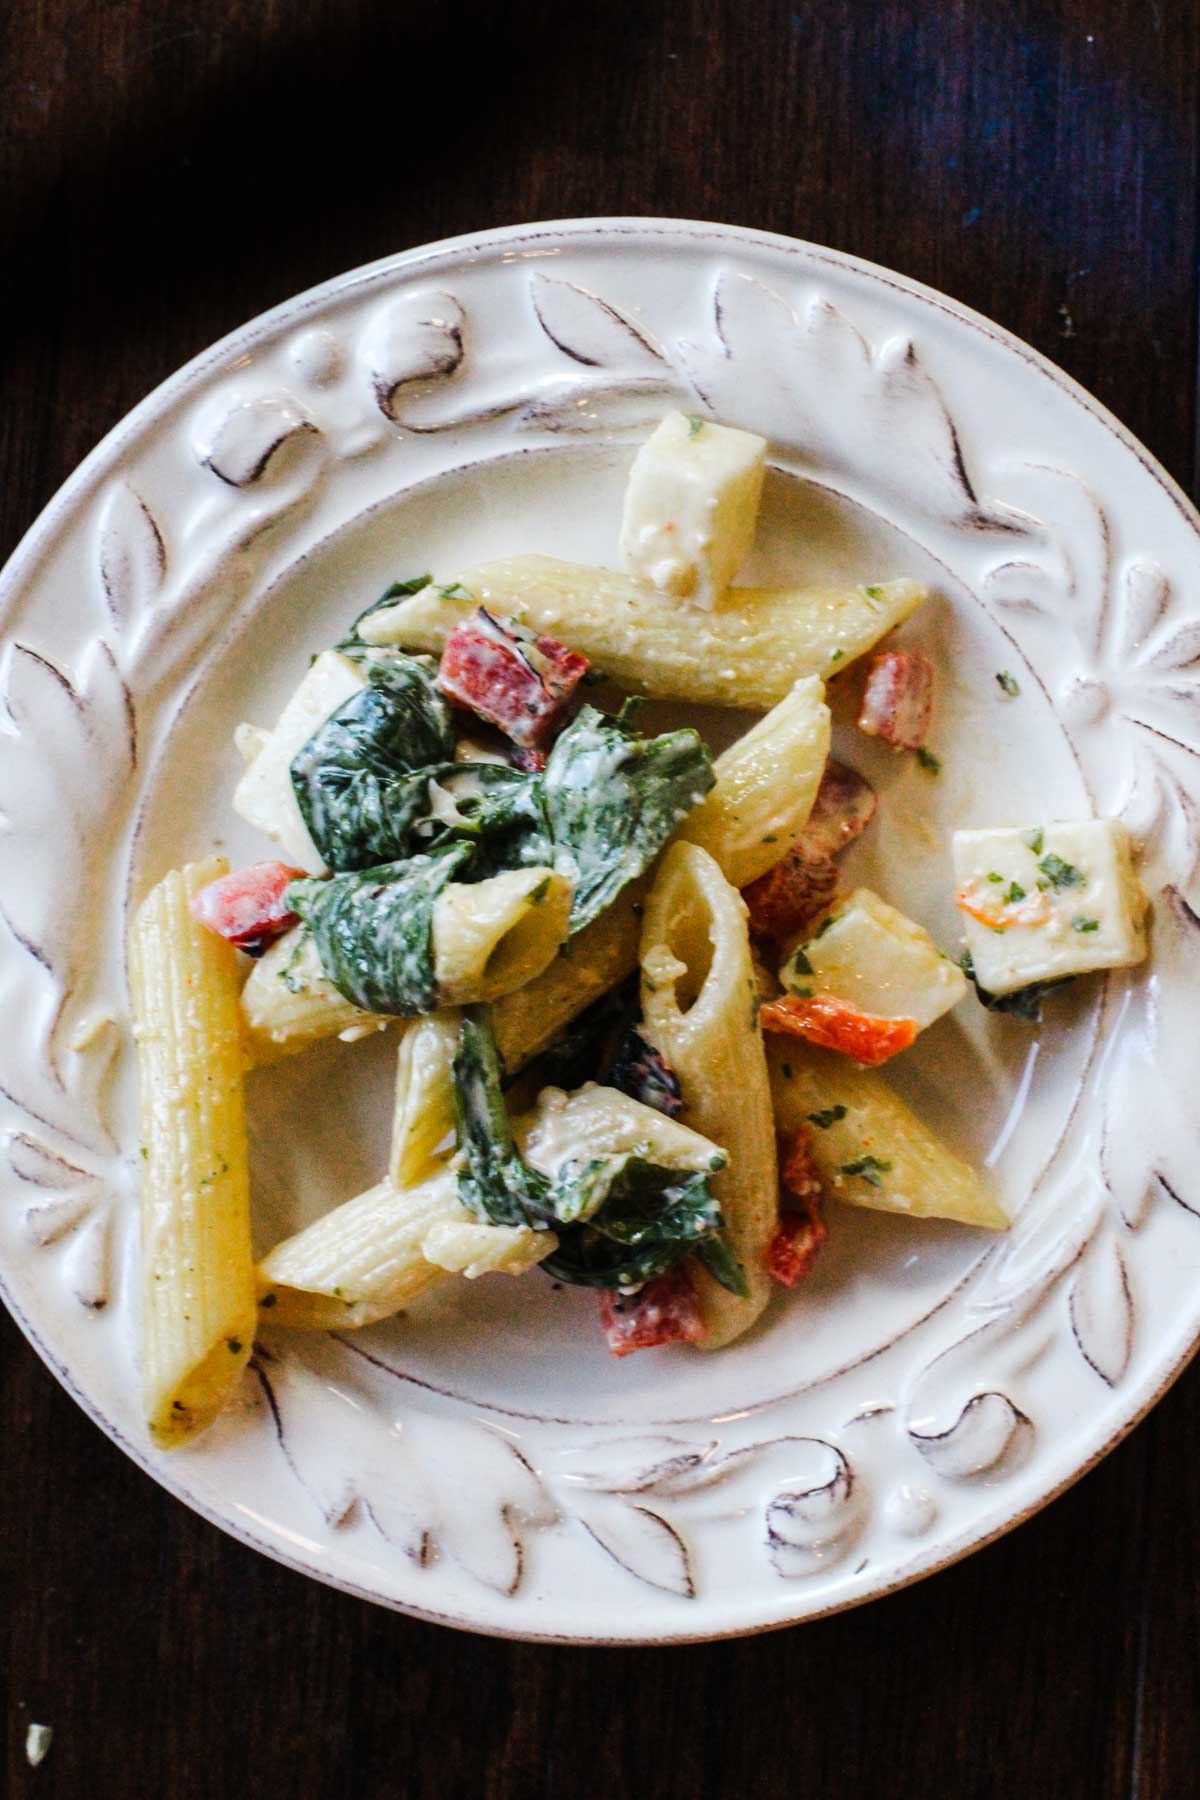 Creamy Smoked Mozzarella Pasta Salad with penne pasta, spinach and roasted red bell pepper